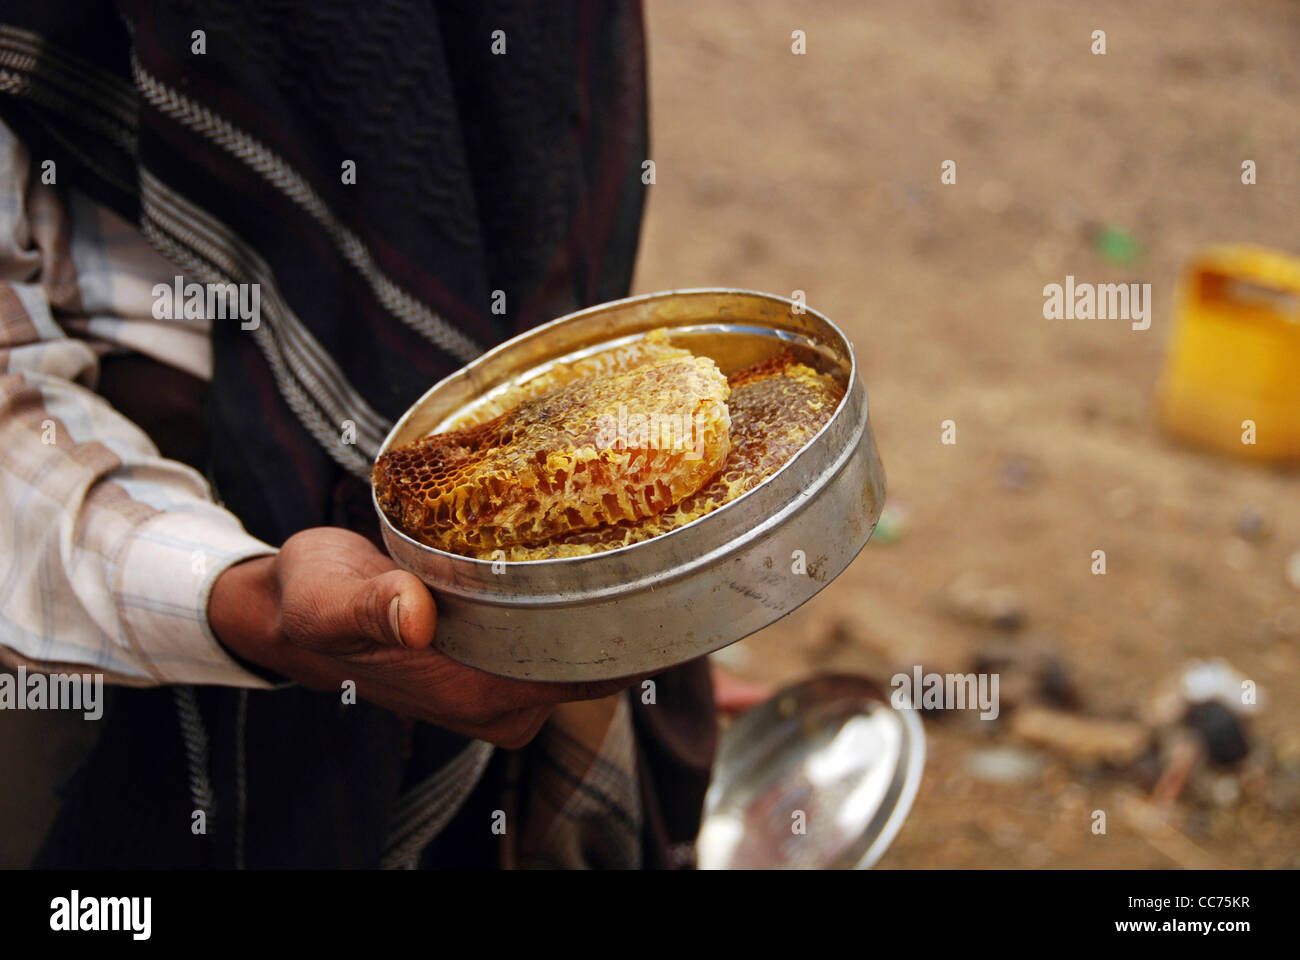 Yemen, Inland, close-up midsection of a man holding honeycomb inside a container - Stock Image